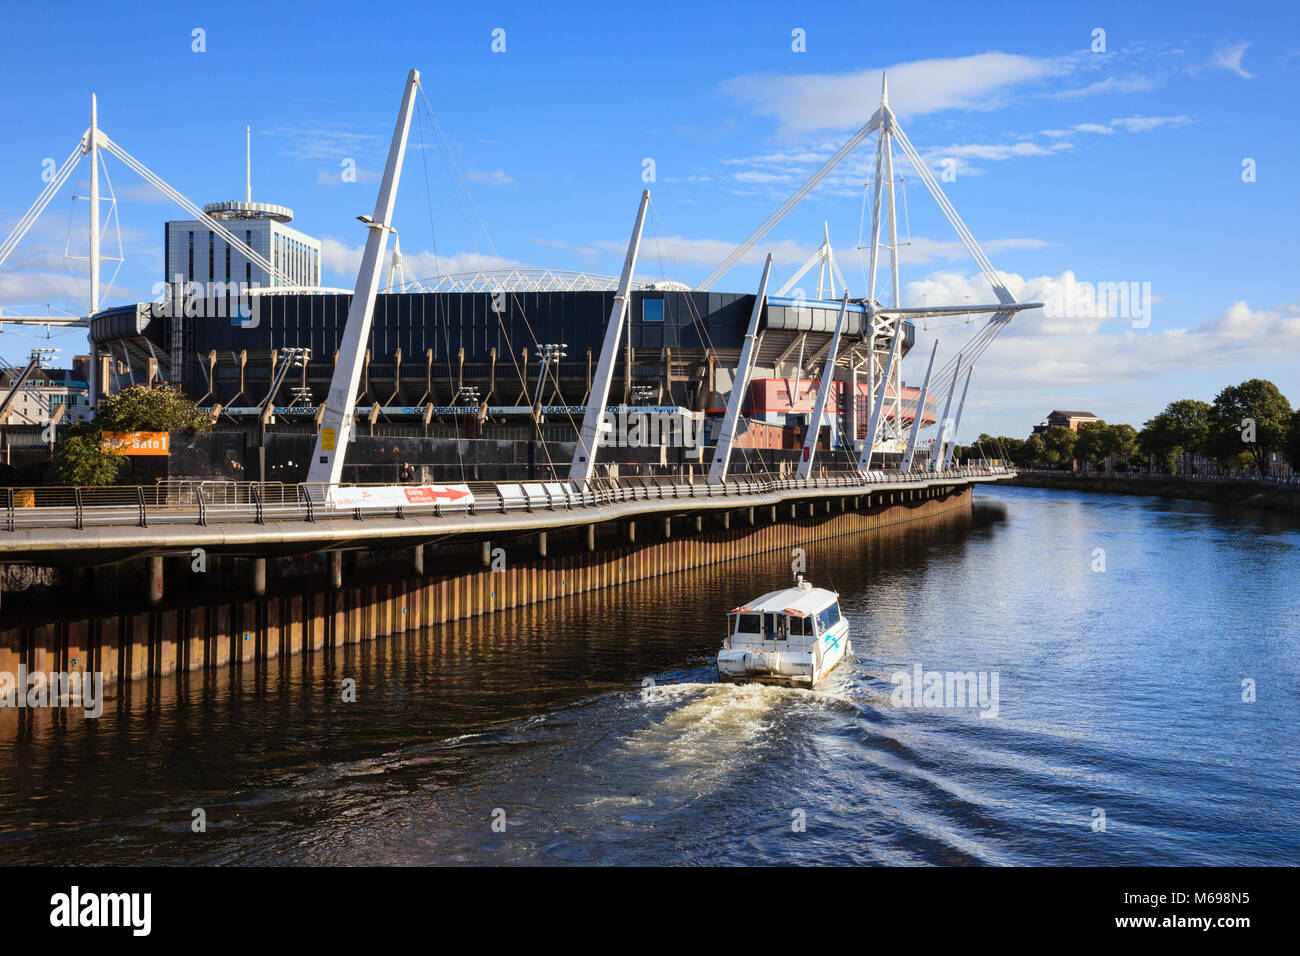 Cardiff Principality Stadium football and rugby venue with watertaxi passing on the River Taff. Cardiff (Caerdydd) - Stock Image